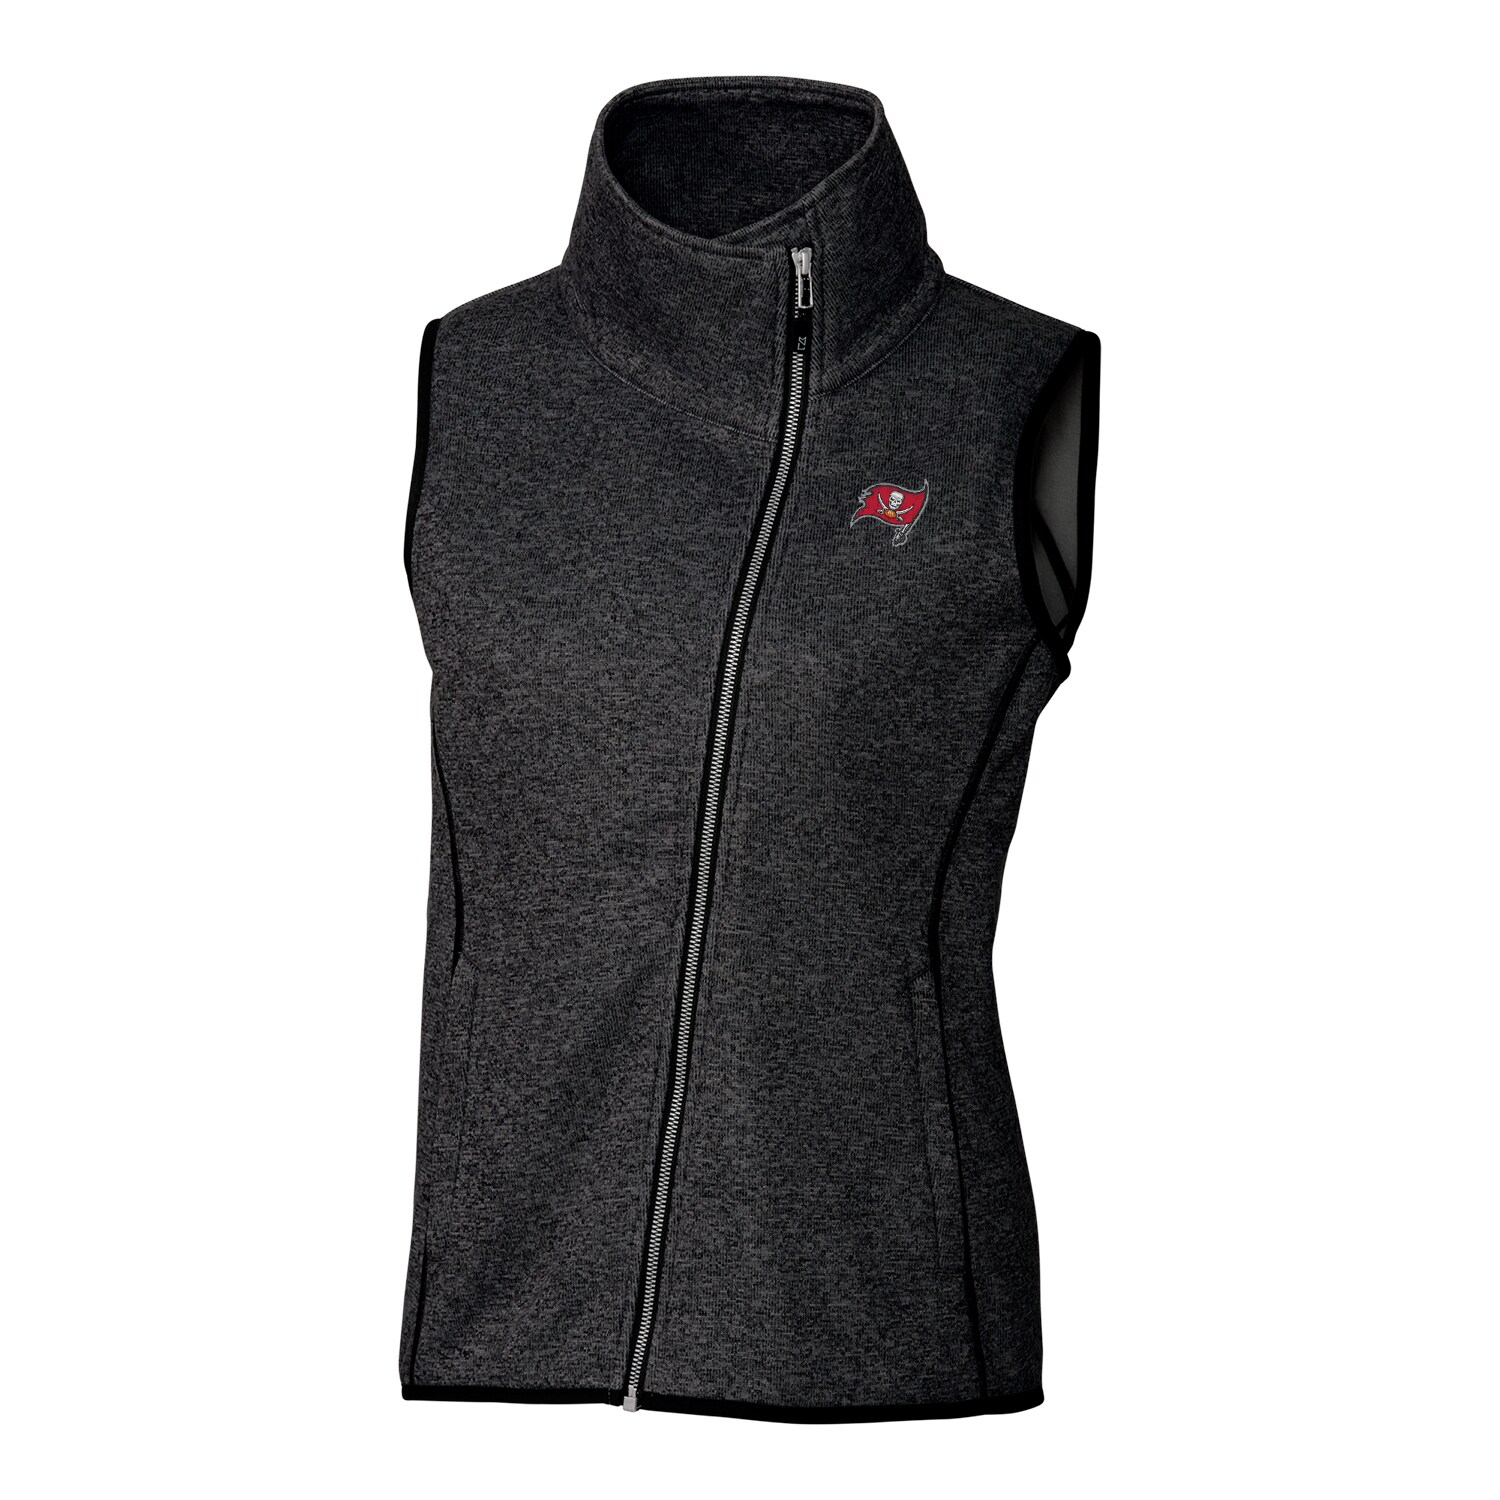 Tampa Bay Buccaneers Cutter & Buck Women's Mainsail Full-Zip Vest - Black